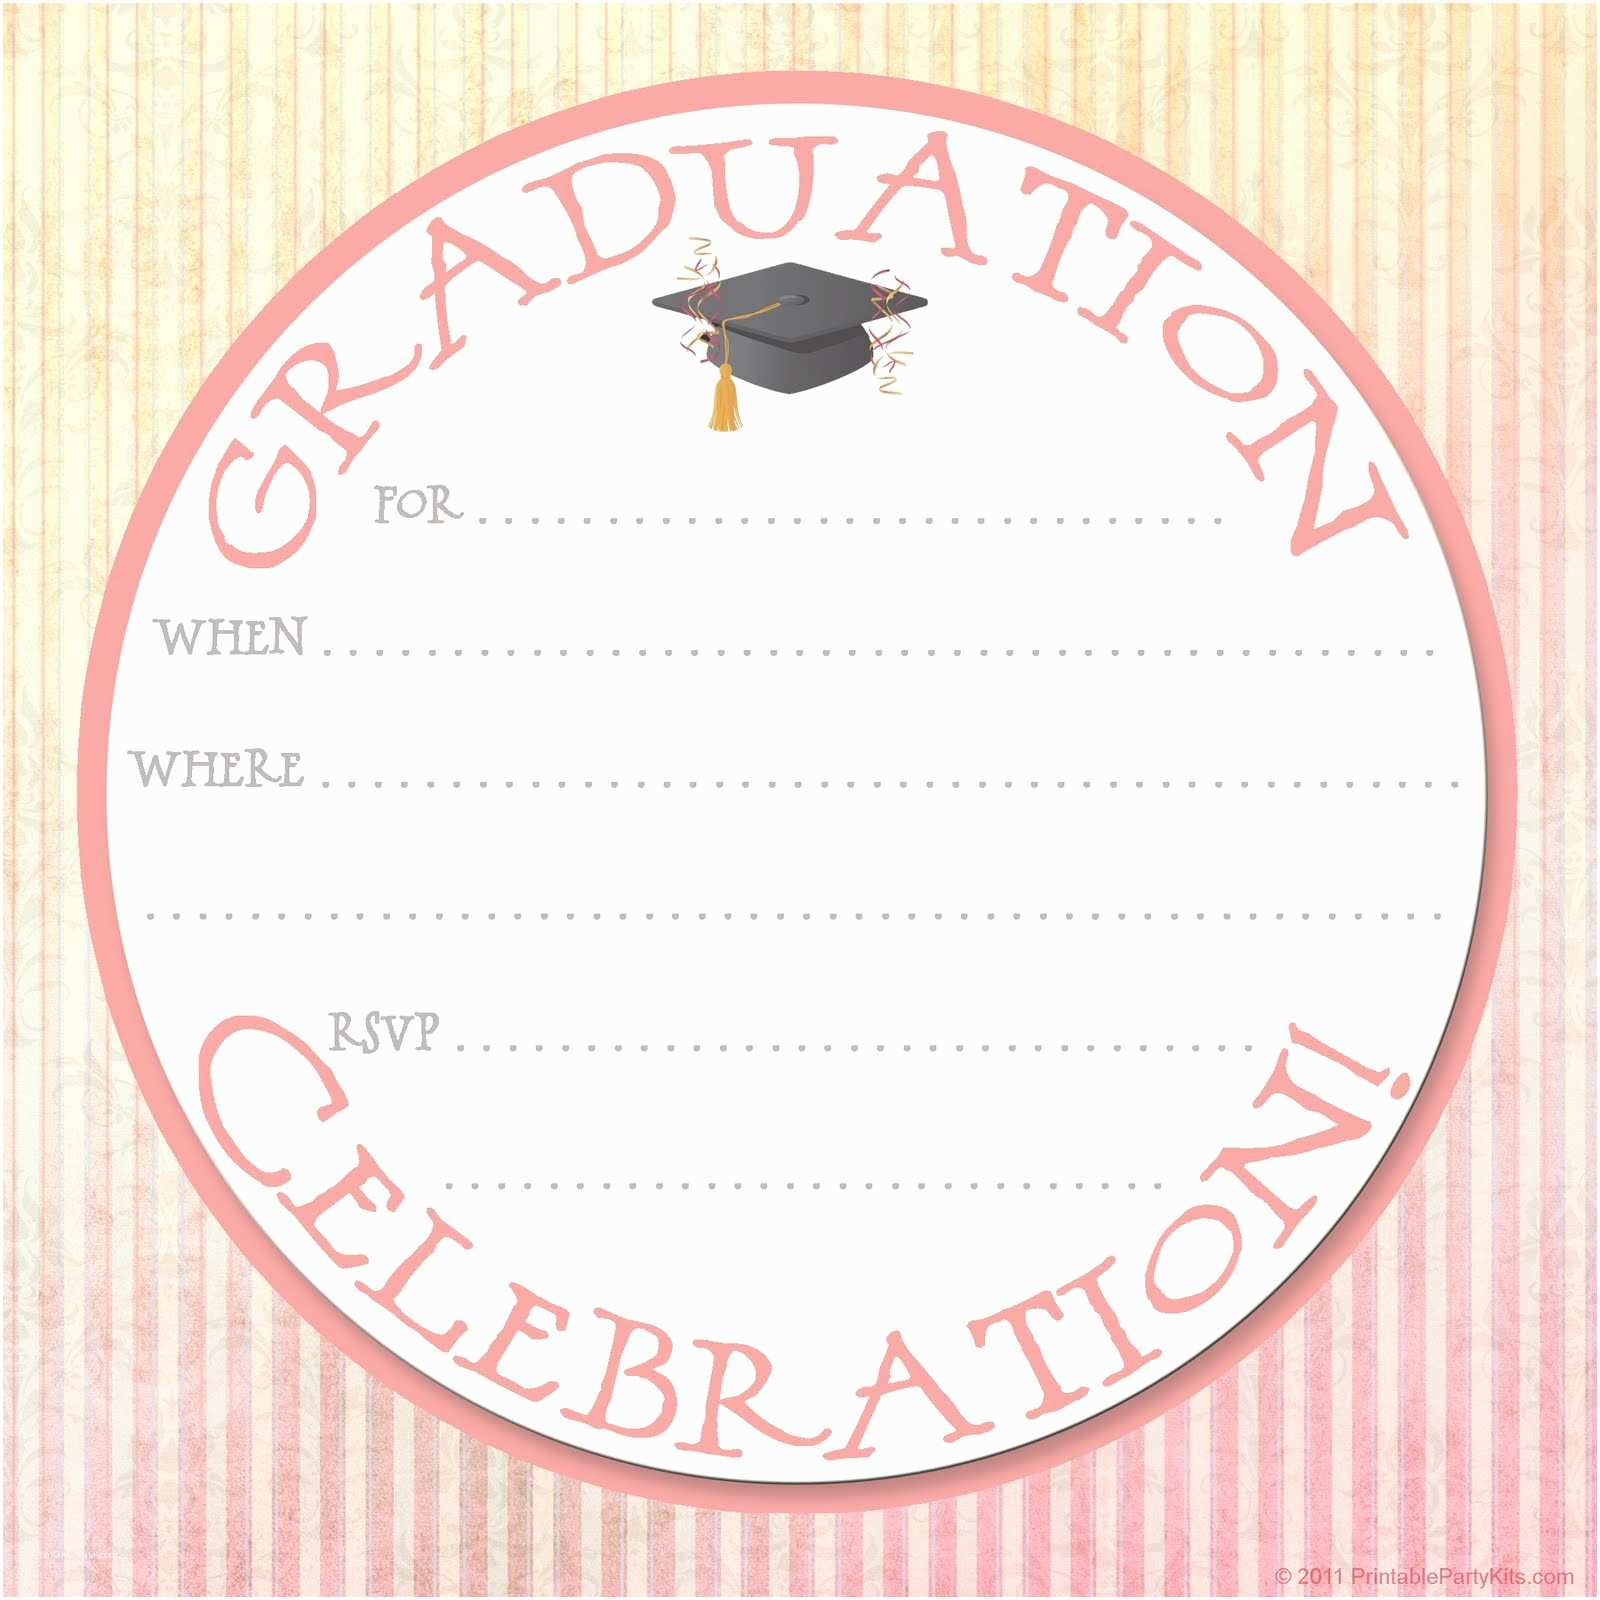 Free Graduation Party Invitation Templates 15 Graduation Flyers for Inviting & Congratulating Your